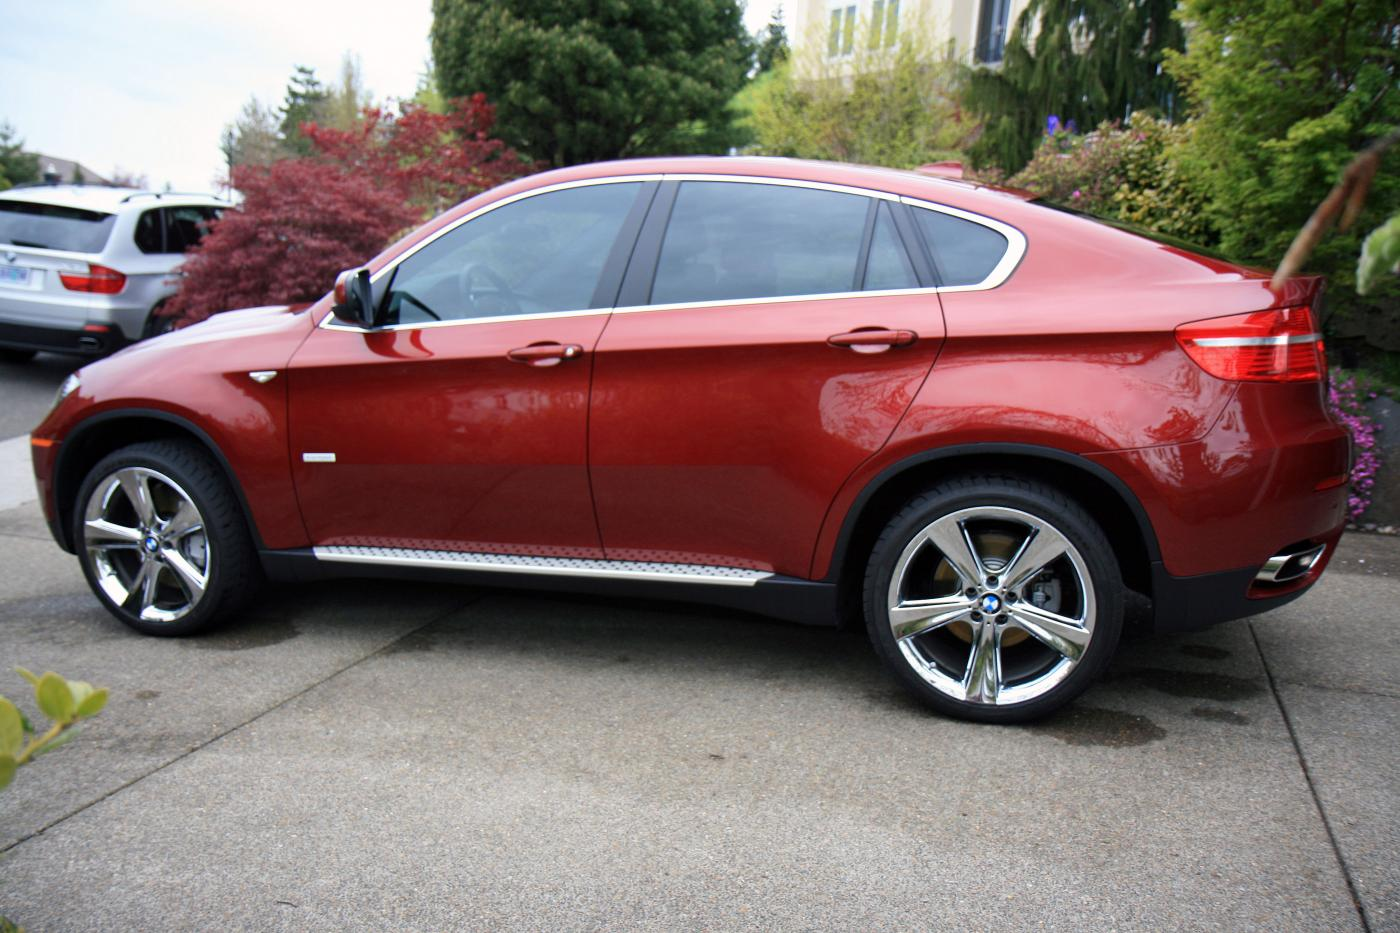 More Pics Of My New X6 Activehybrid In Red W 21 Chrome Wheels